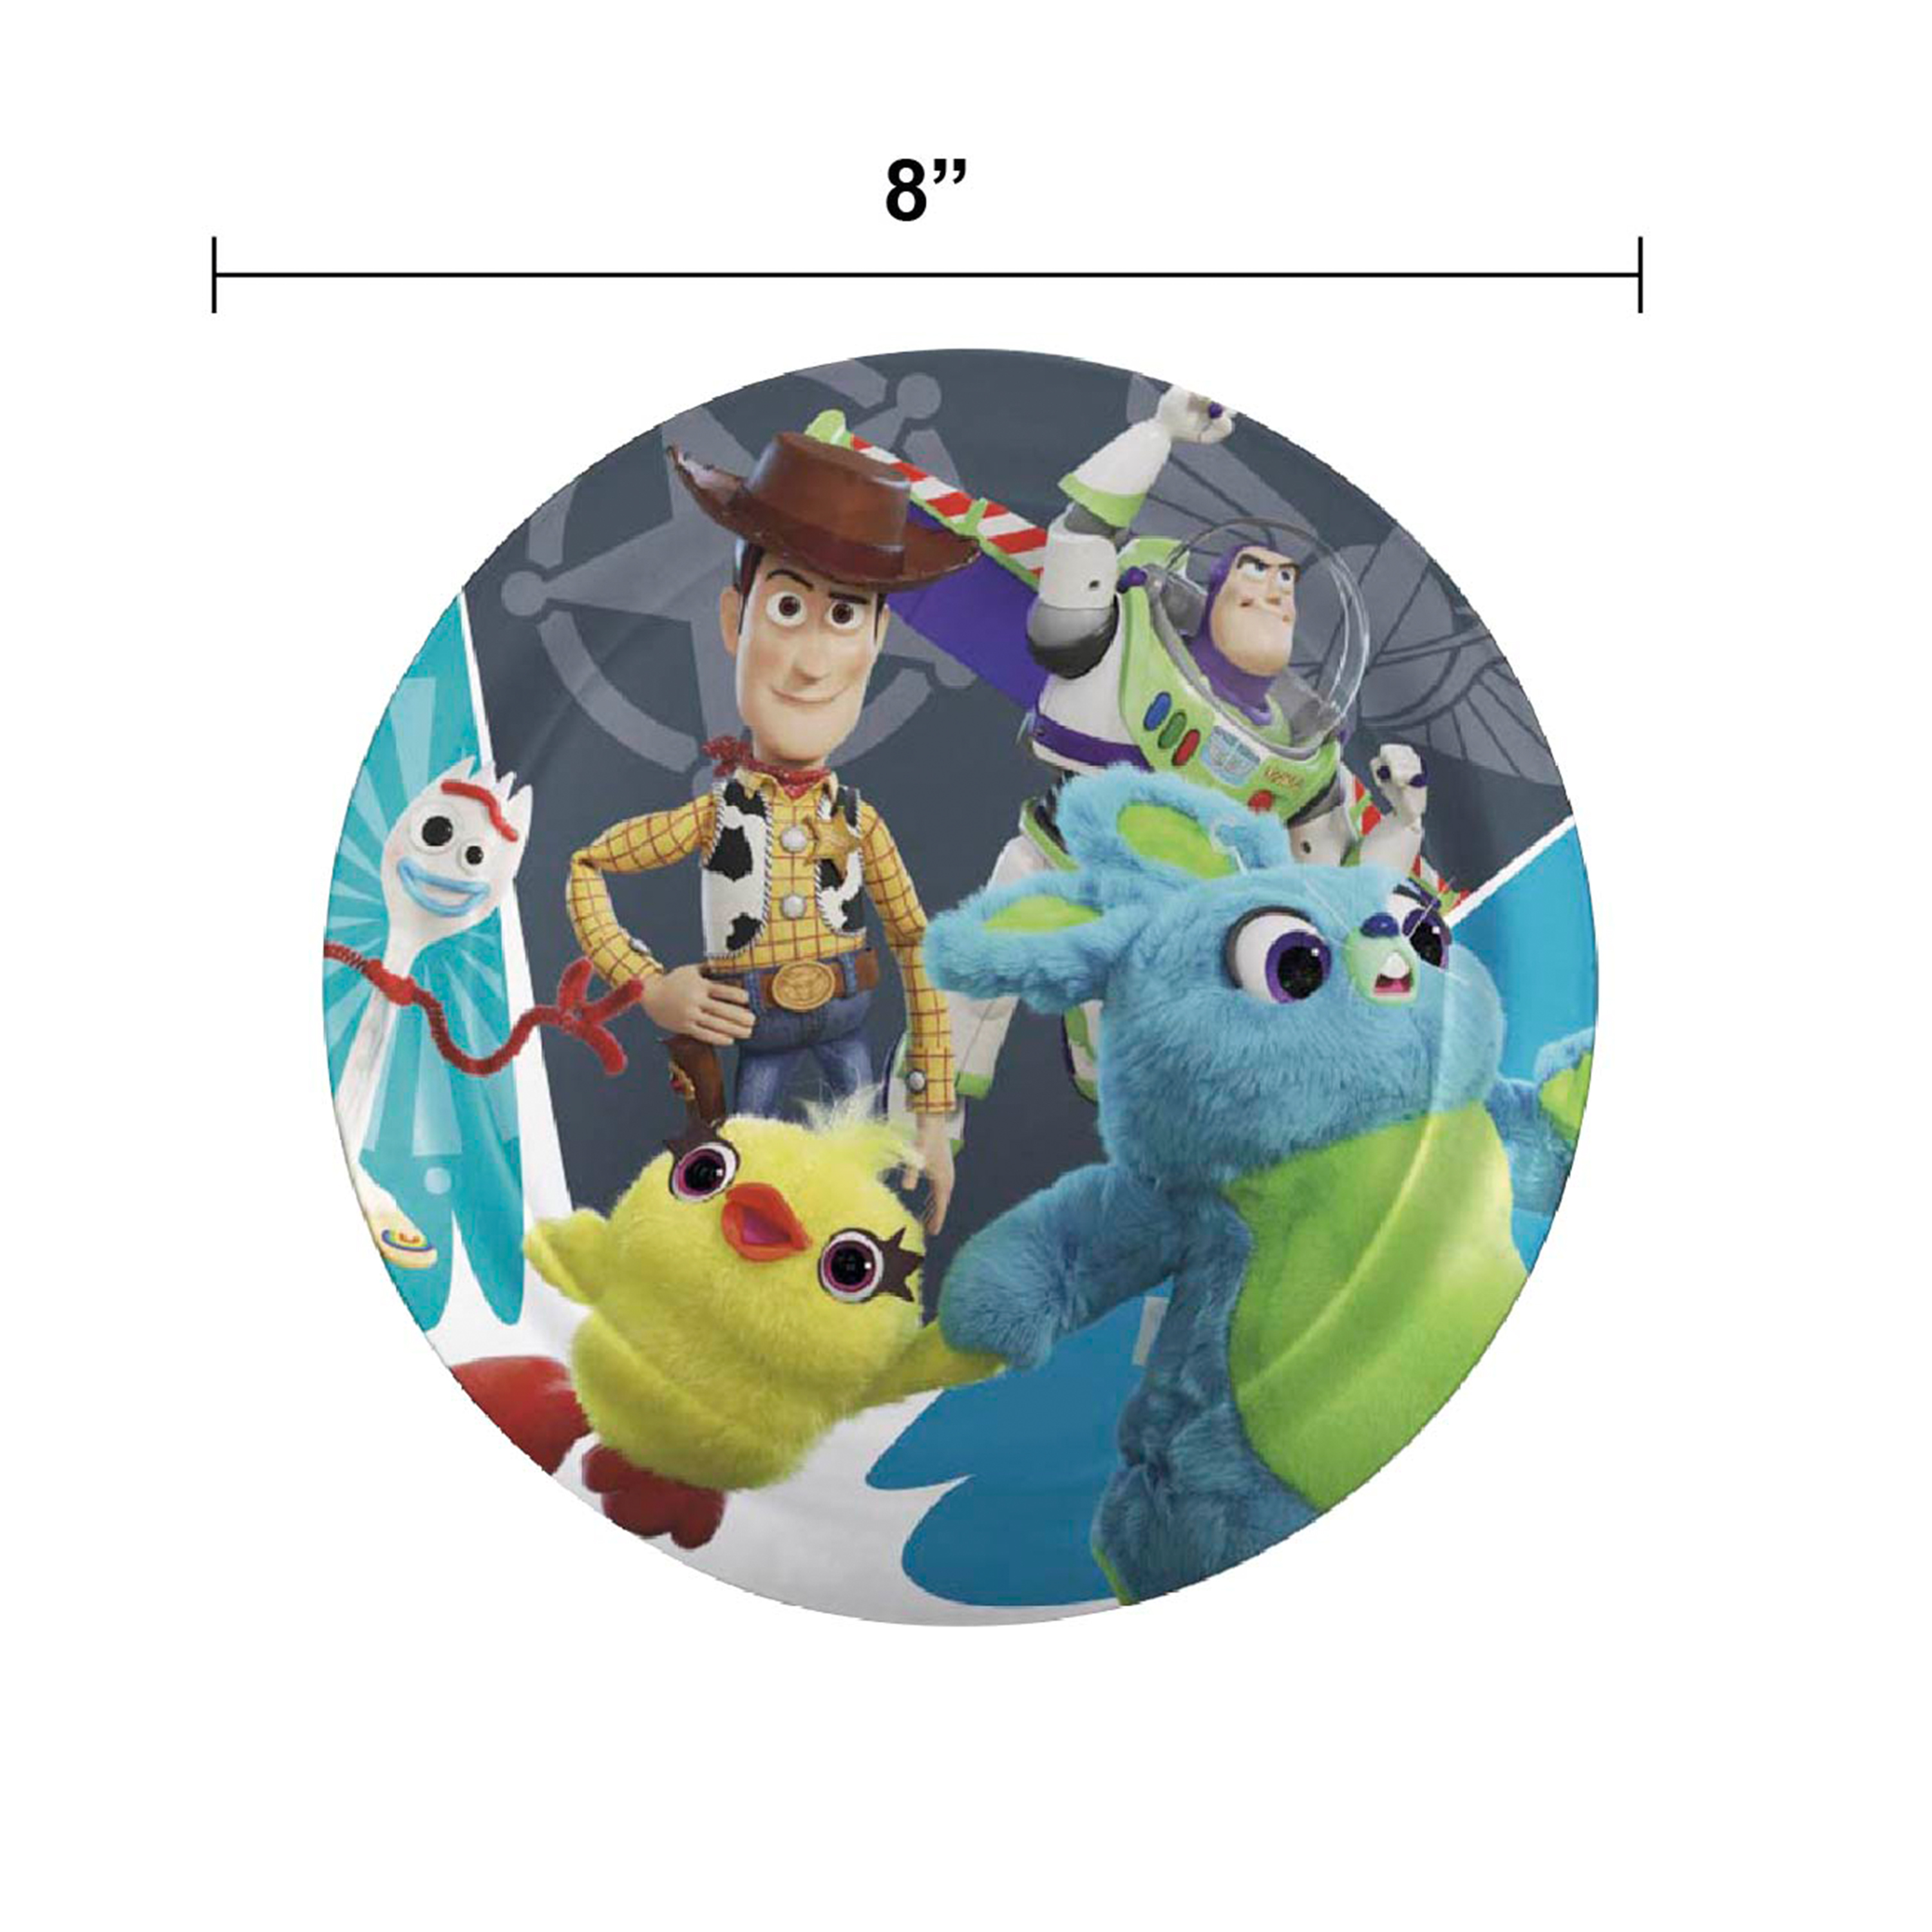 Disney Pixar Dinnerware Set, Woody, Buzz and Friends, 5-piece set slideshow image 5